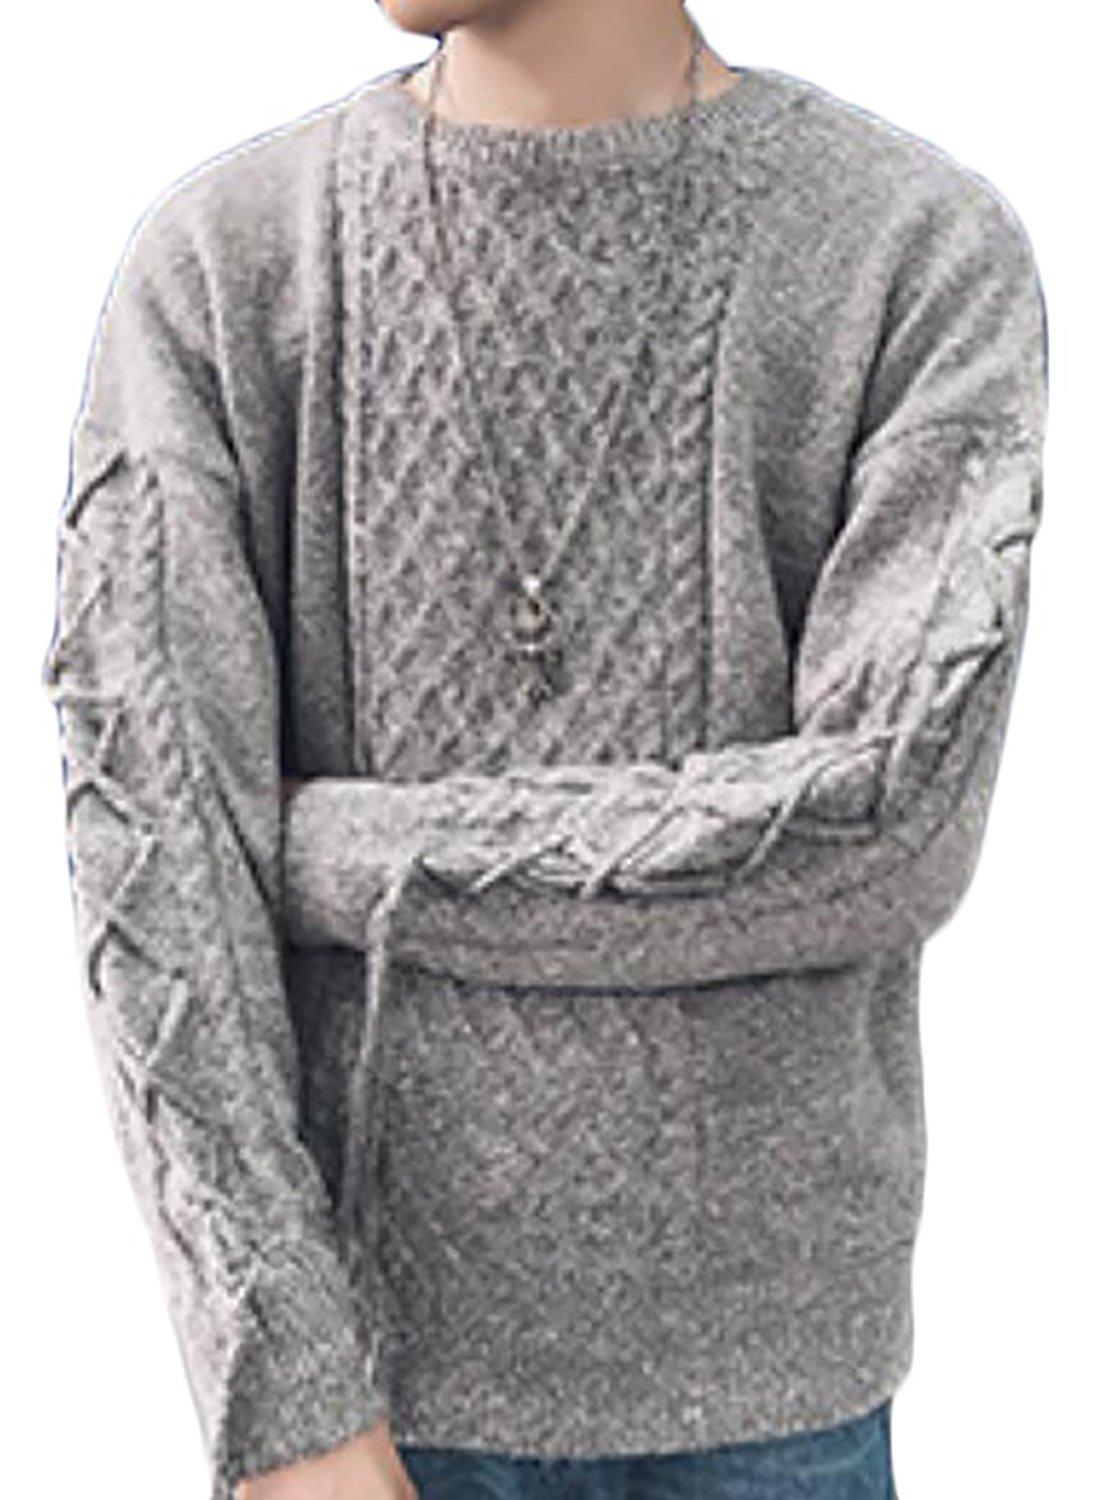 Wofupowga Mens Loose Fit Solid Pullover Knitwear Turtle Neck Long Sleeve Sweater